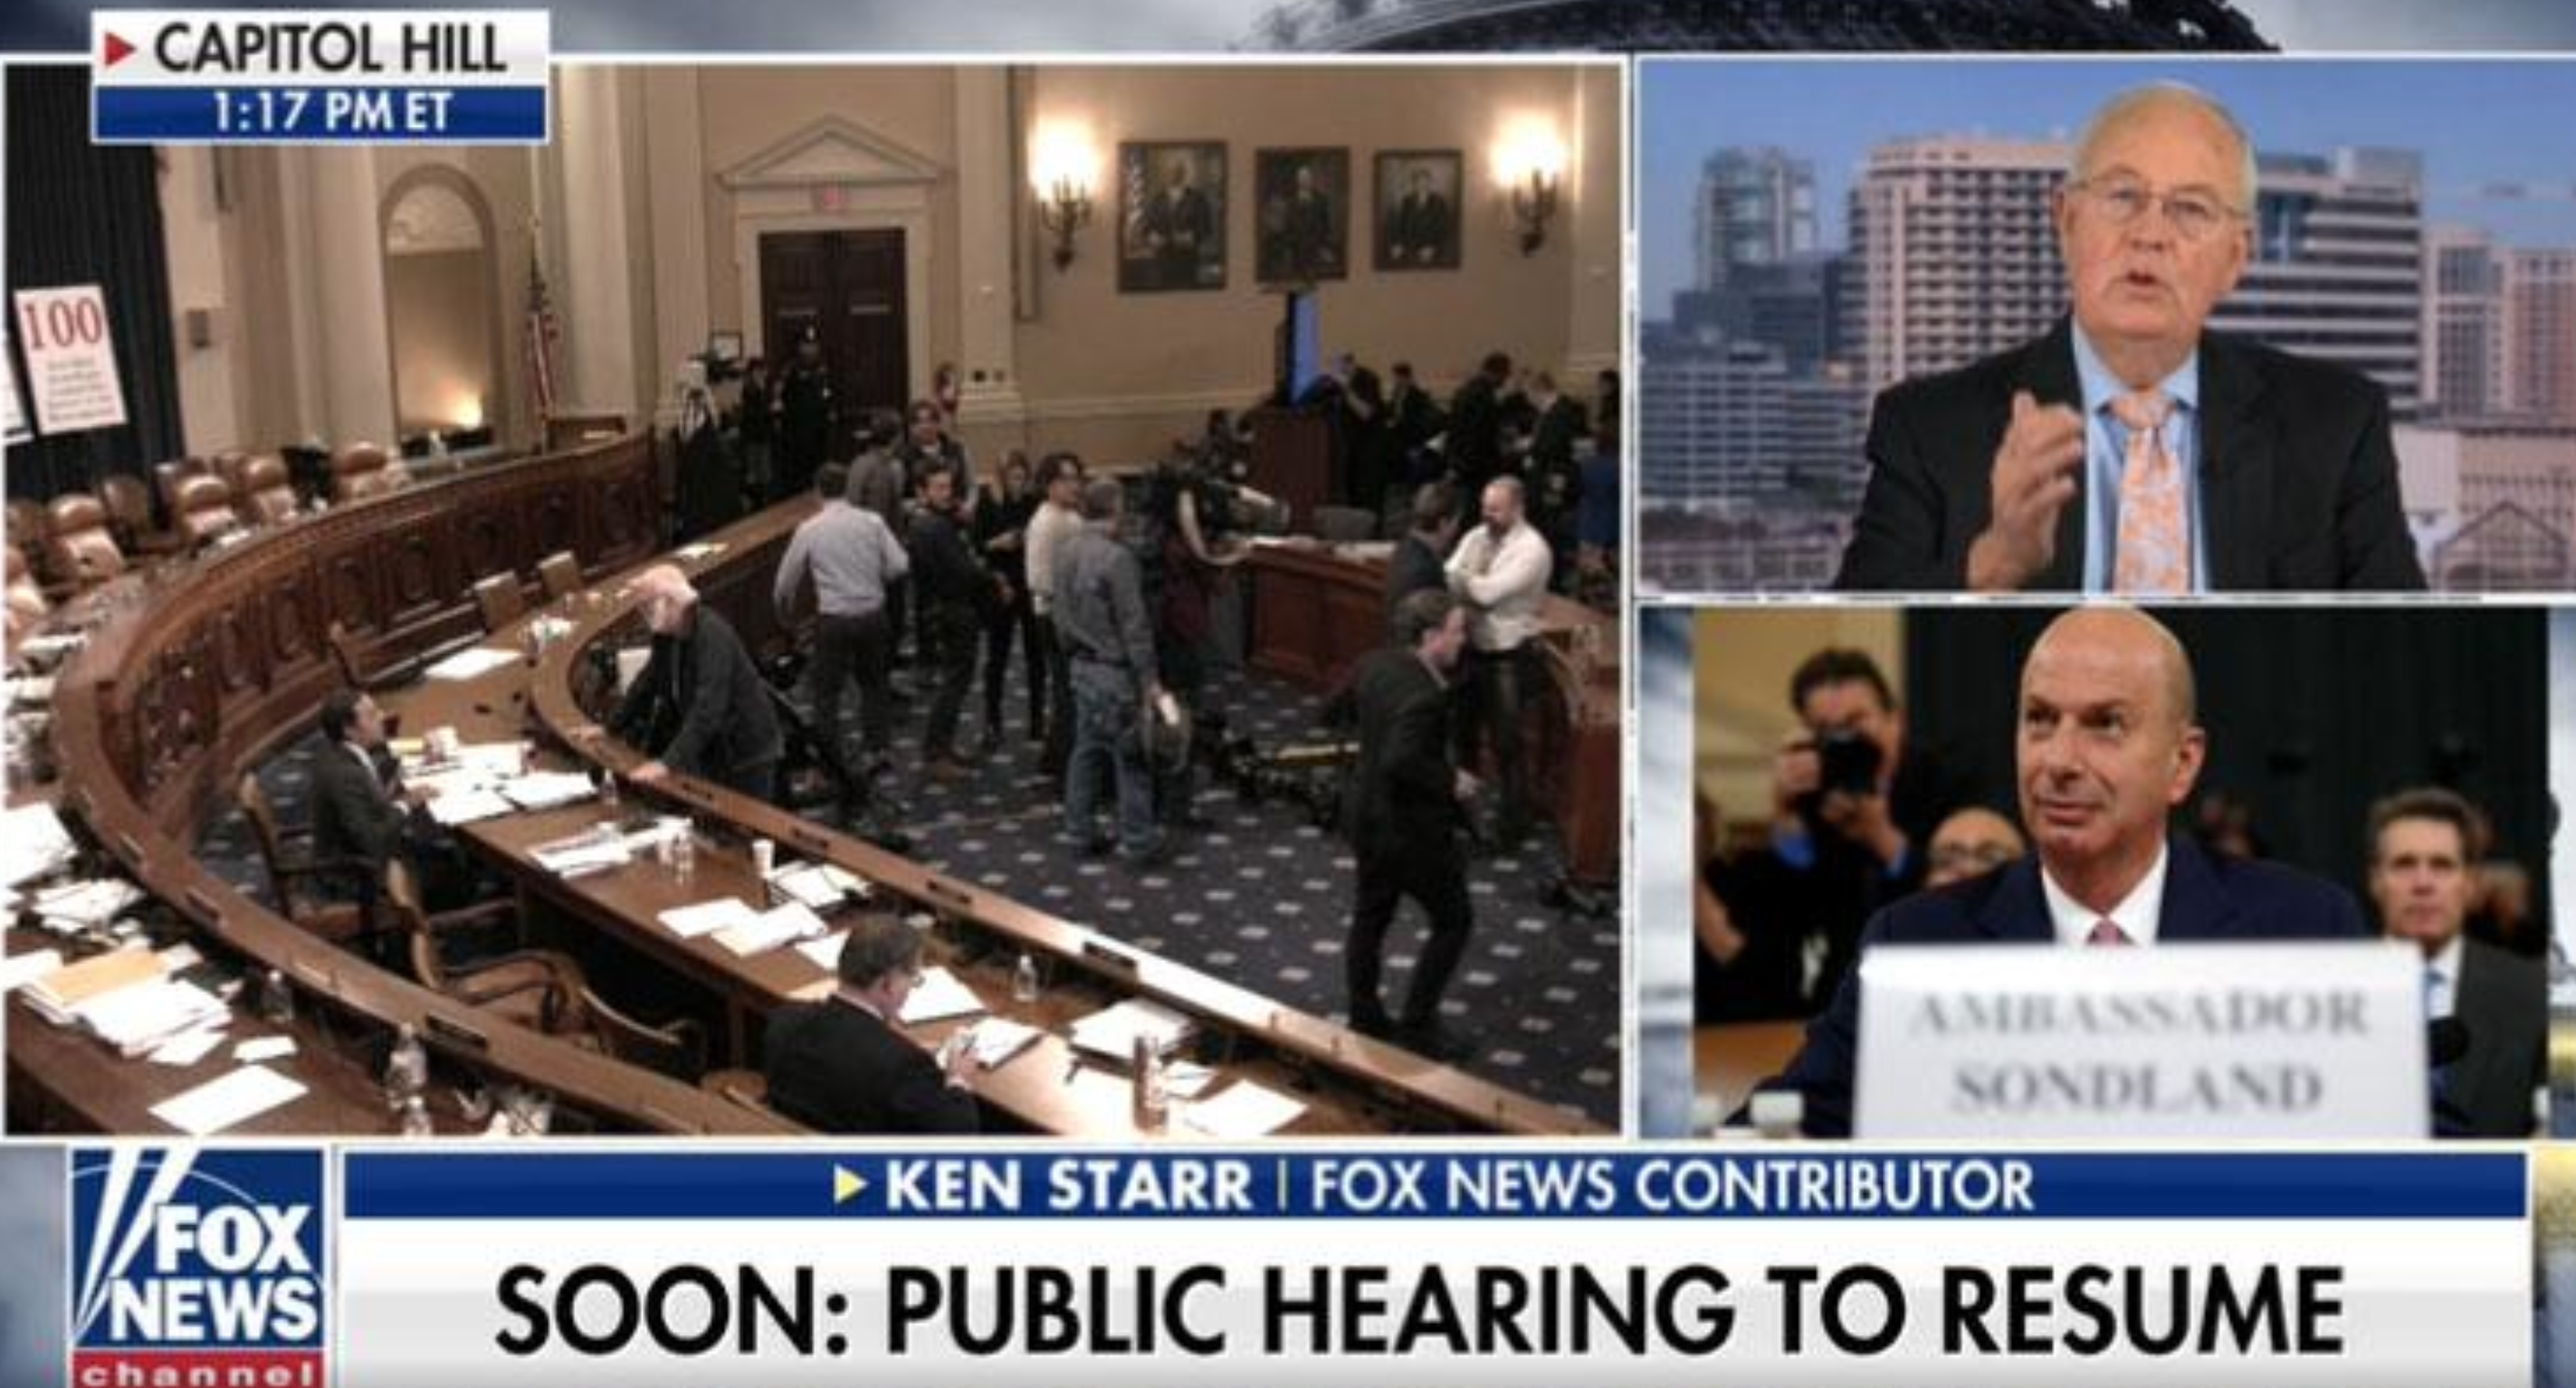 Westlake Legal Group Screen-Shot-2019-11-20-at-4.38.29-PM Ken Starr says he's 'stunned' by Sondland omission of Trump claim he wanted no 'quid pro quo' Joshua Nelson fox-news/shows/americas-newsroom fox-news/politics/trump-impeachment-inquiry fox-news/media/fox-news-flash fox news fnc/media fnc article 69c9a202-1476-58ff-88f9-58a517254172